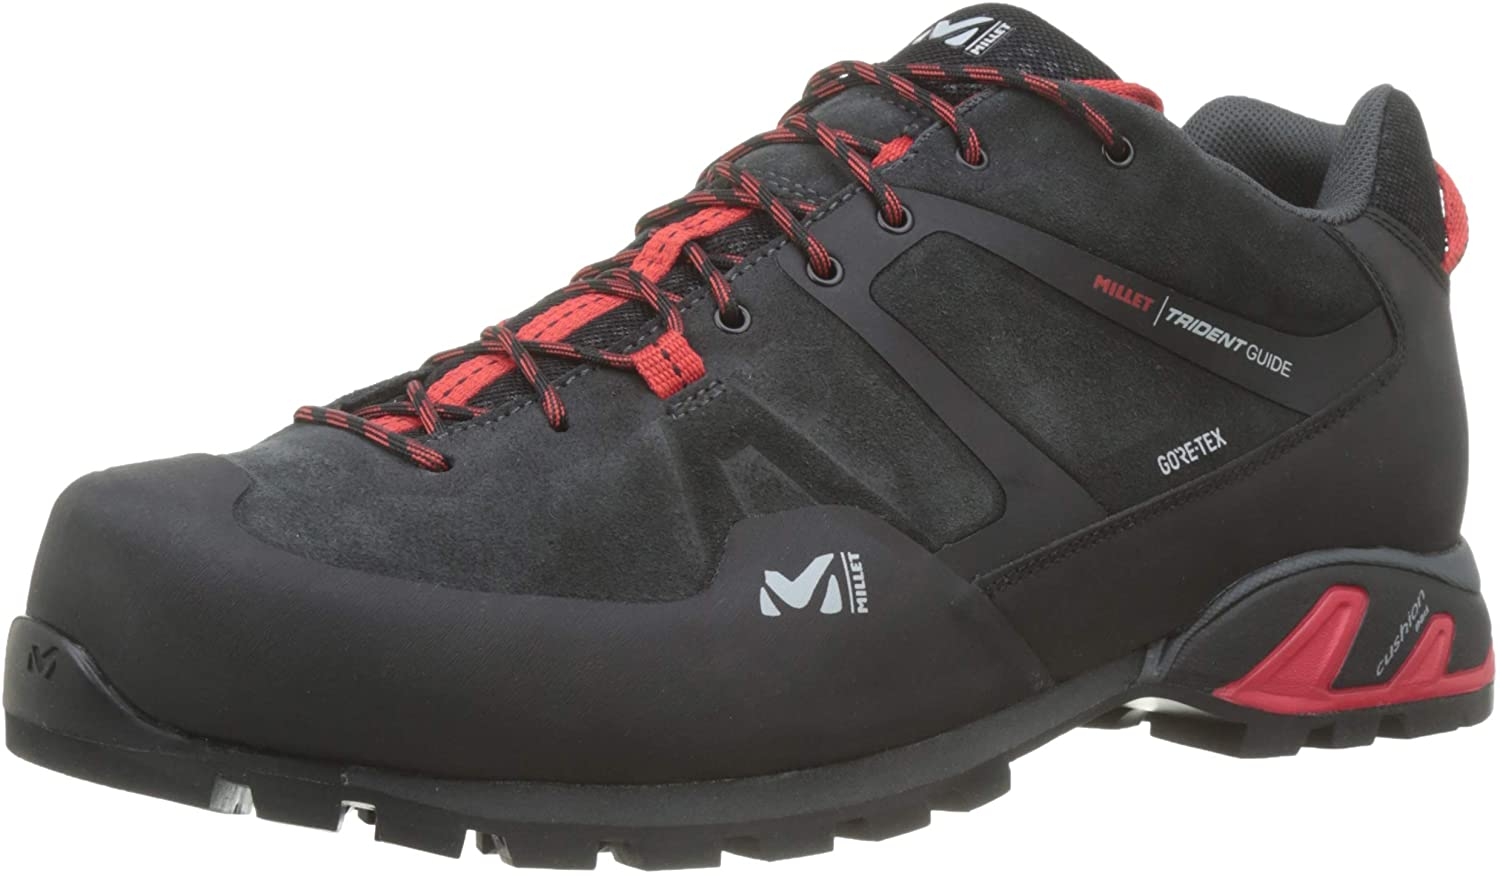 Millet Sale special price Unisex Adults' Trident 40% OFF Cheap Sale Guide Bla Climbing Shoes GTX